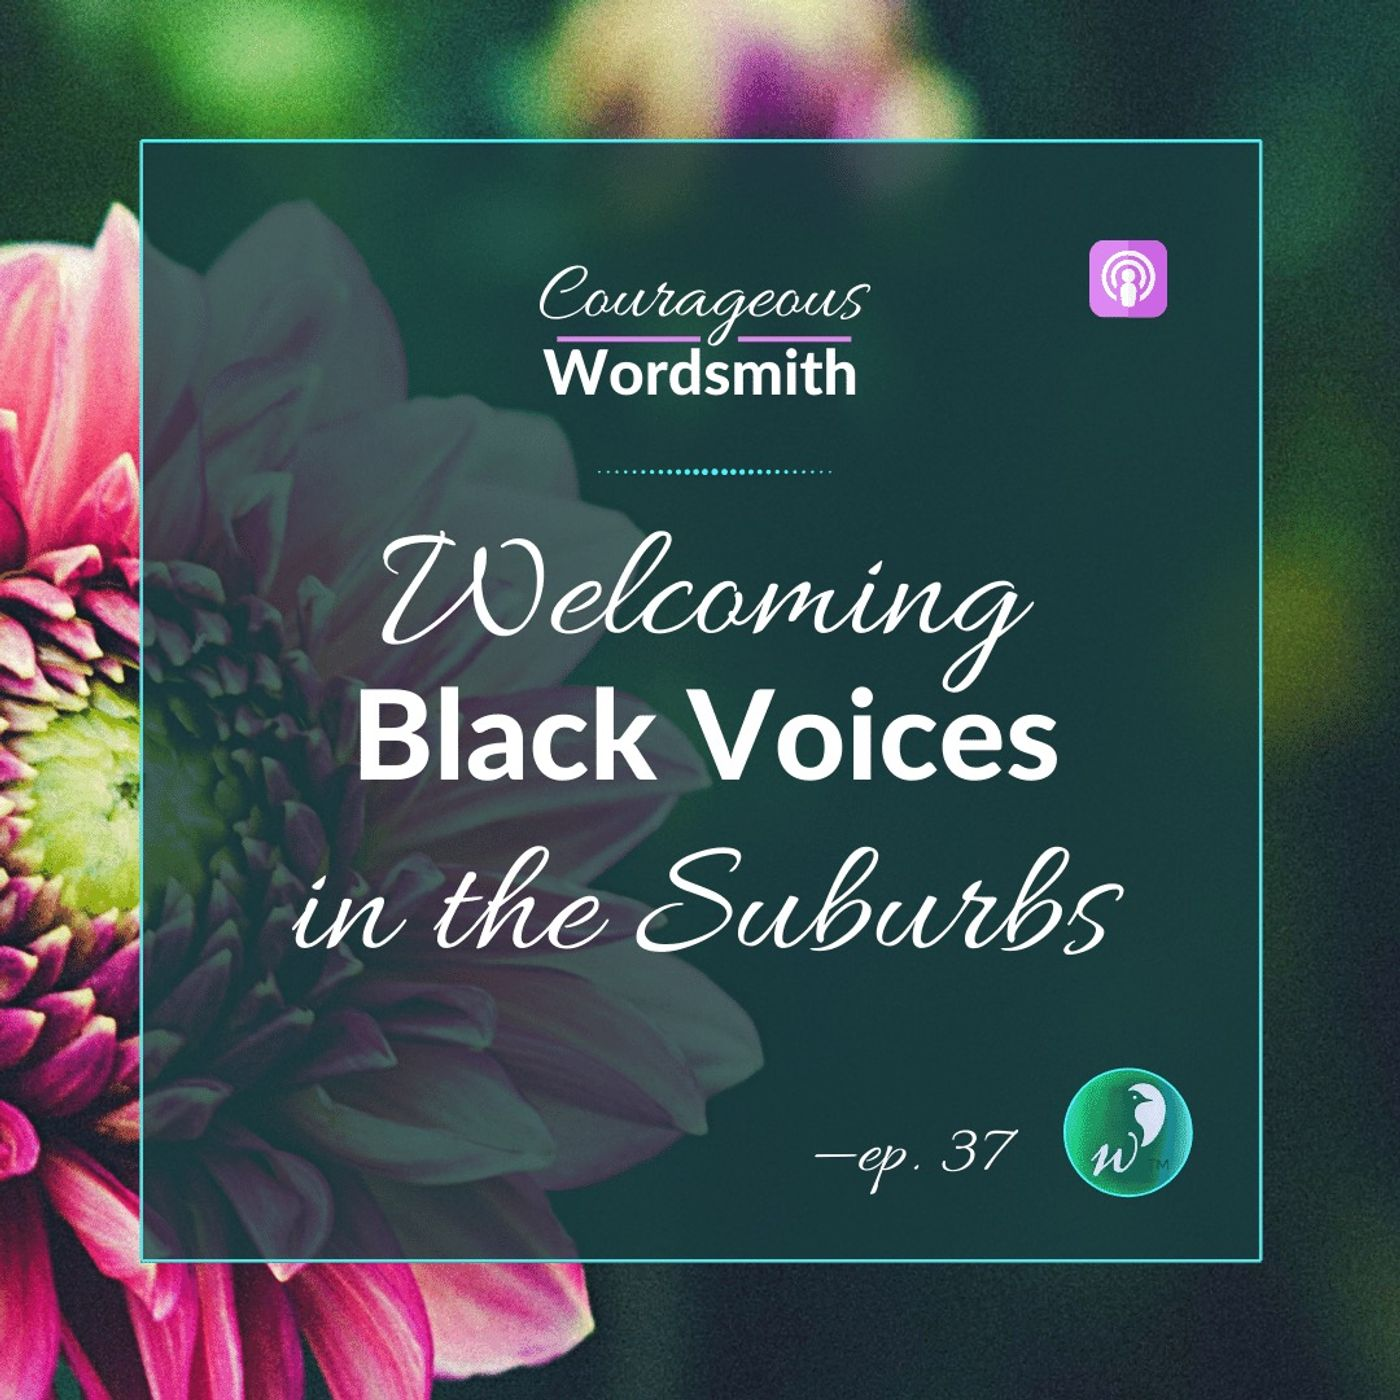 Welcoming Black Voices in the Suburbs